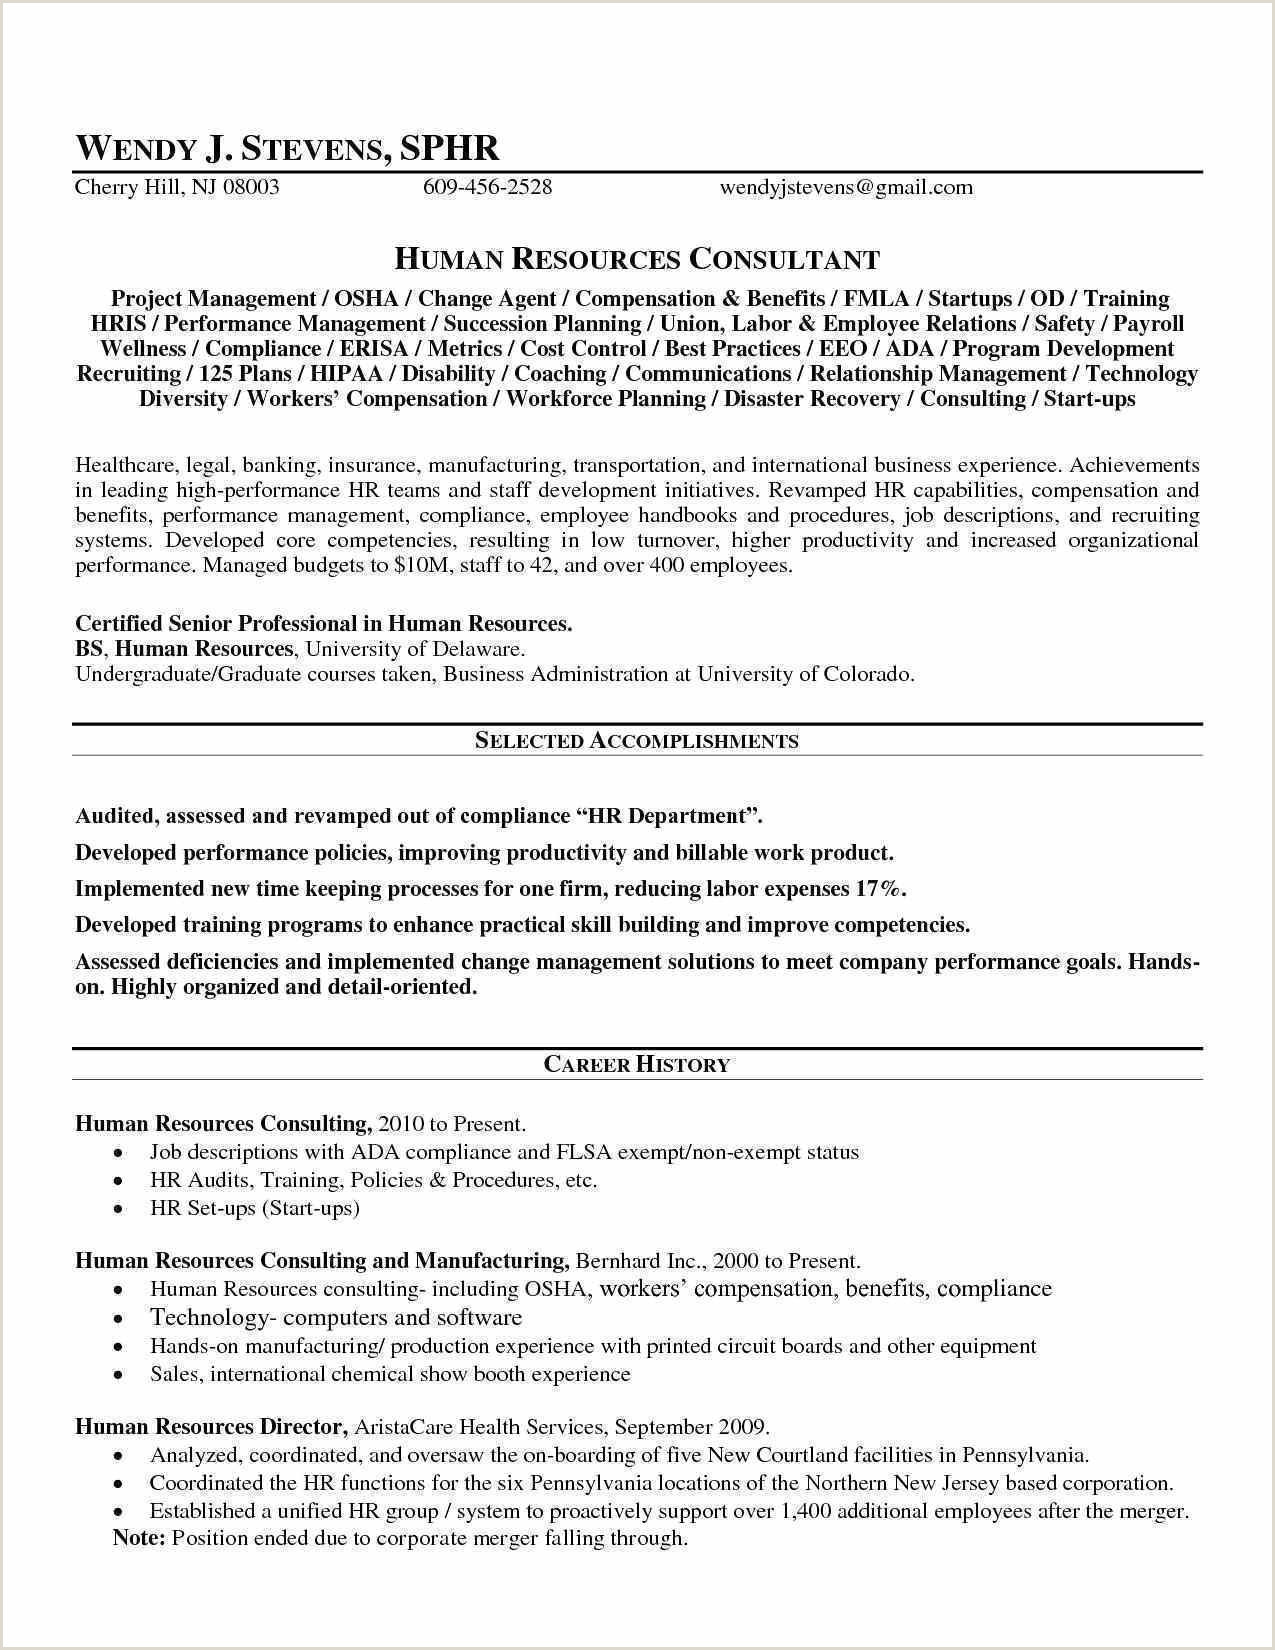 Cv format for Company Job Human Resources Manager Resume